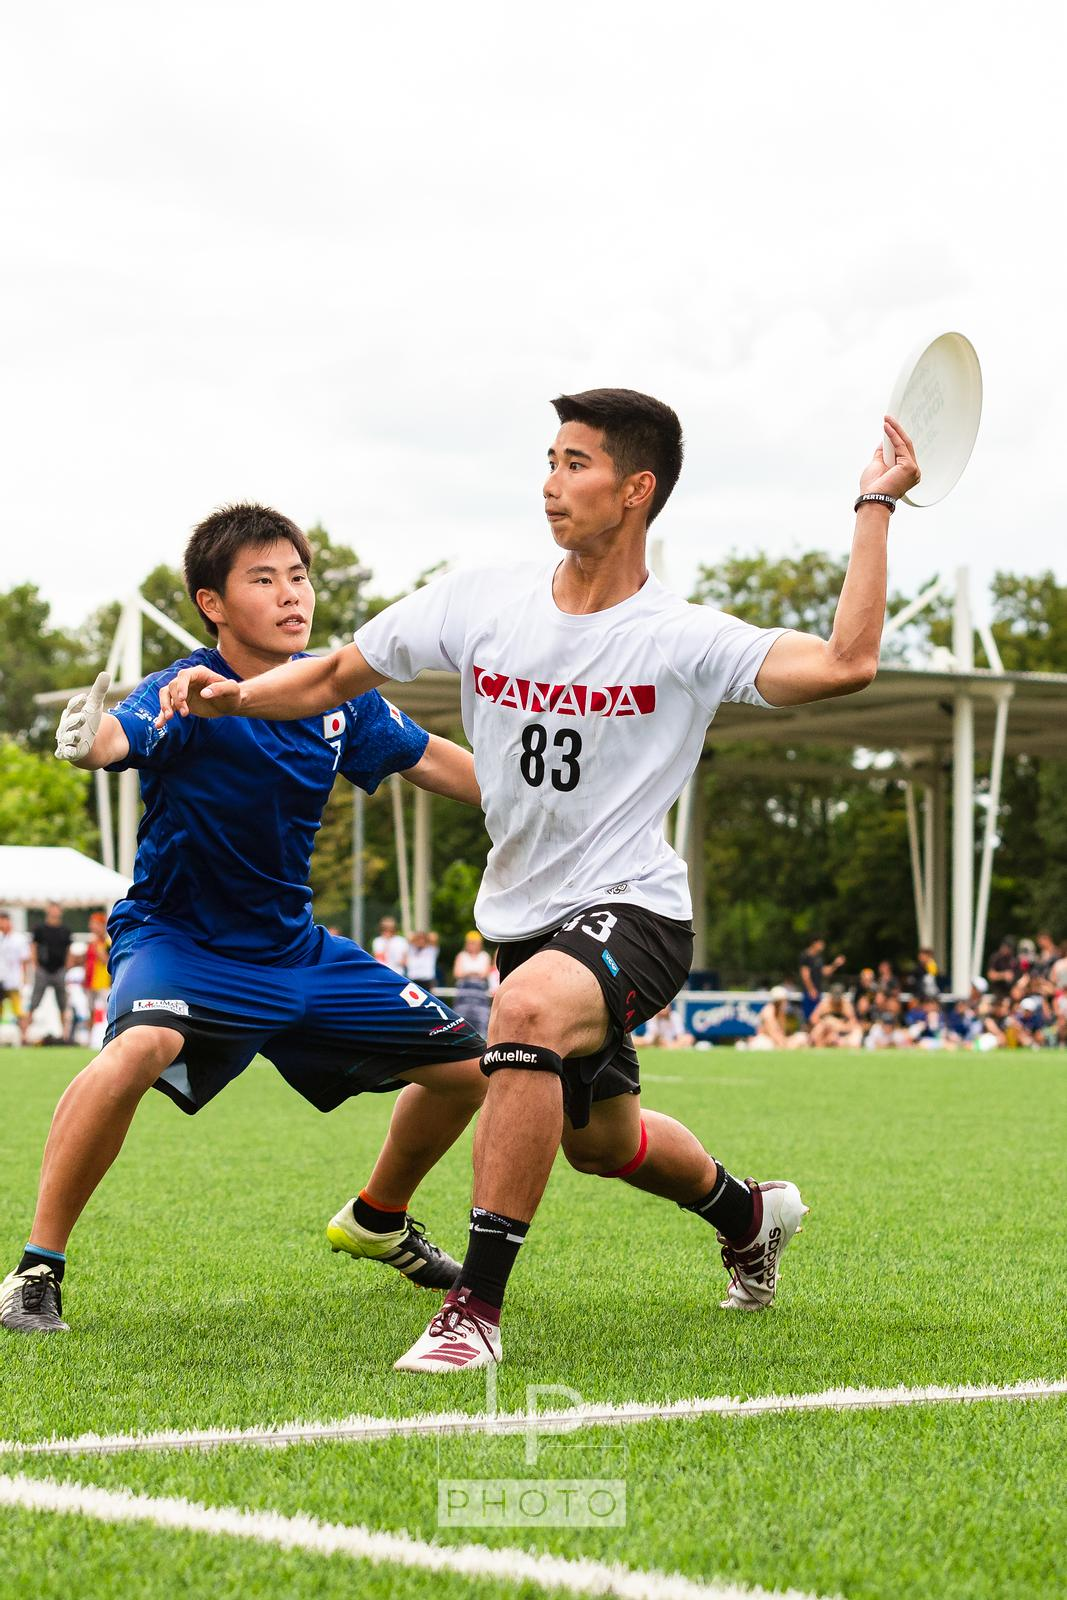 ultimate-frisbee-photography-26